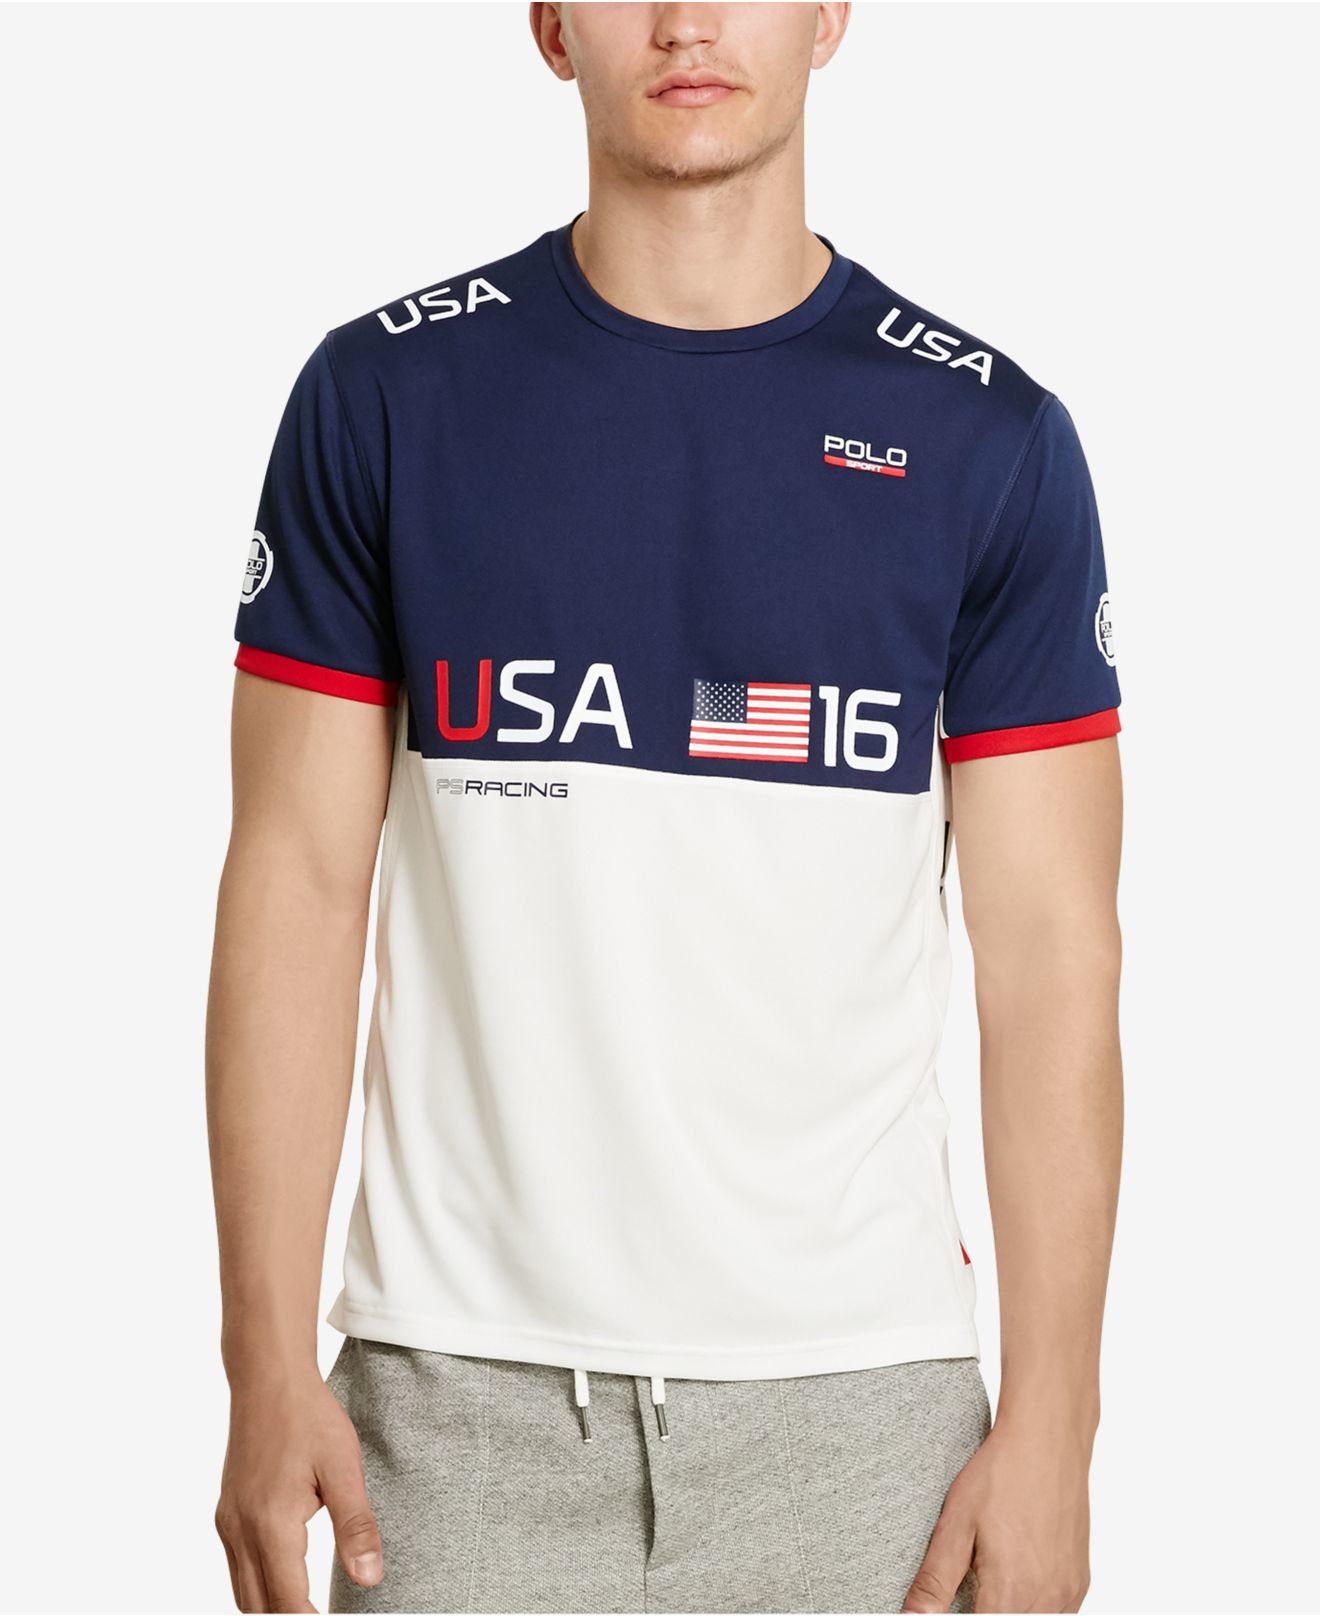 polo ralph lauren polo sport men 39 s team usa micro dot. Black Bedroom Furniture Sets. Home Design Ideas